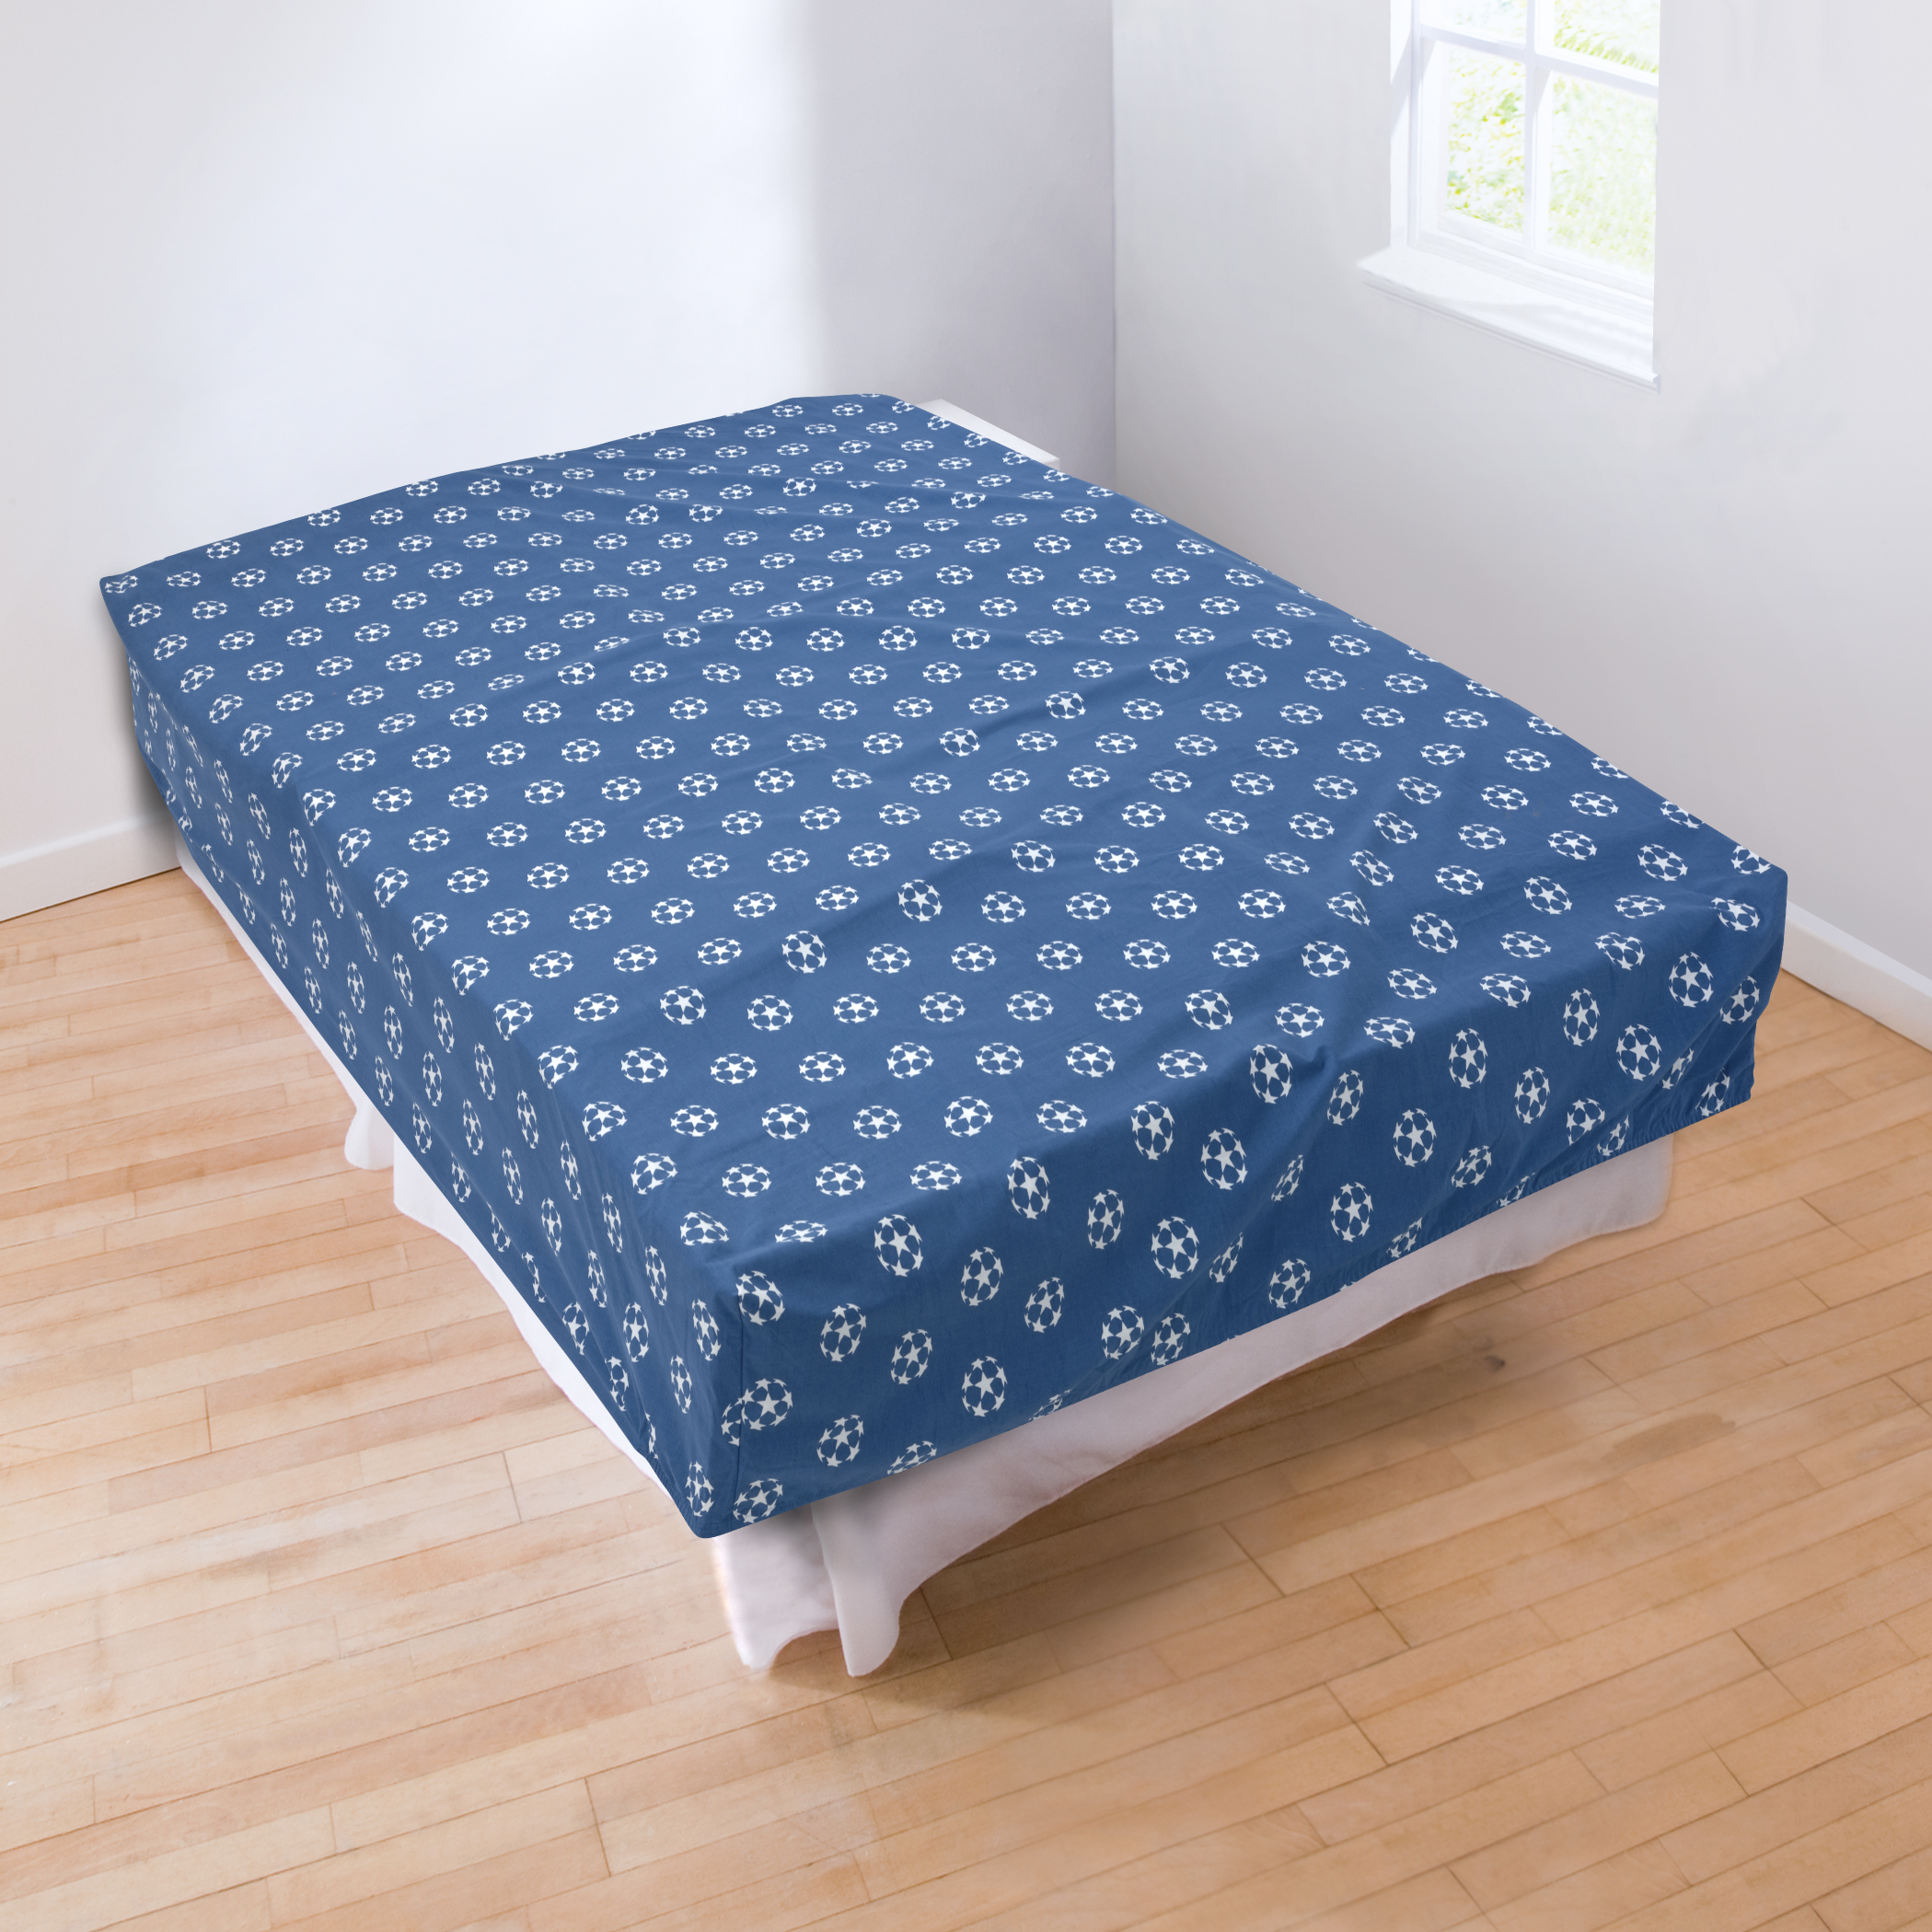 UEFA Champions League Fitted Sheet - Double - 140cm x 190cm